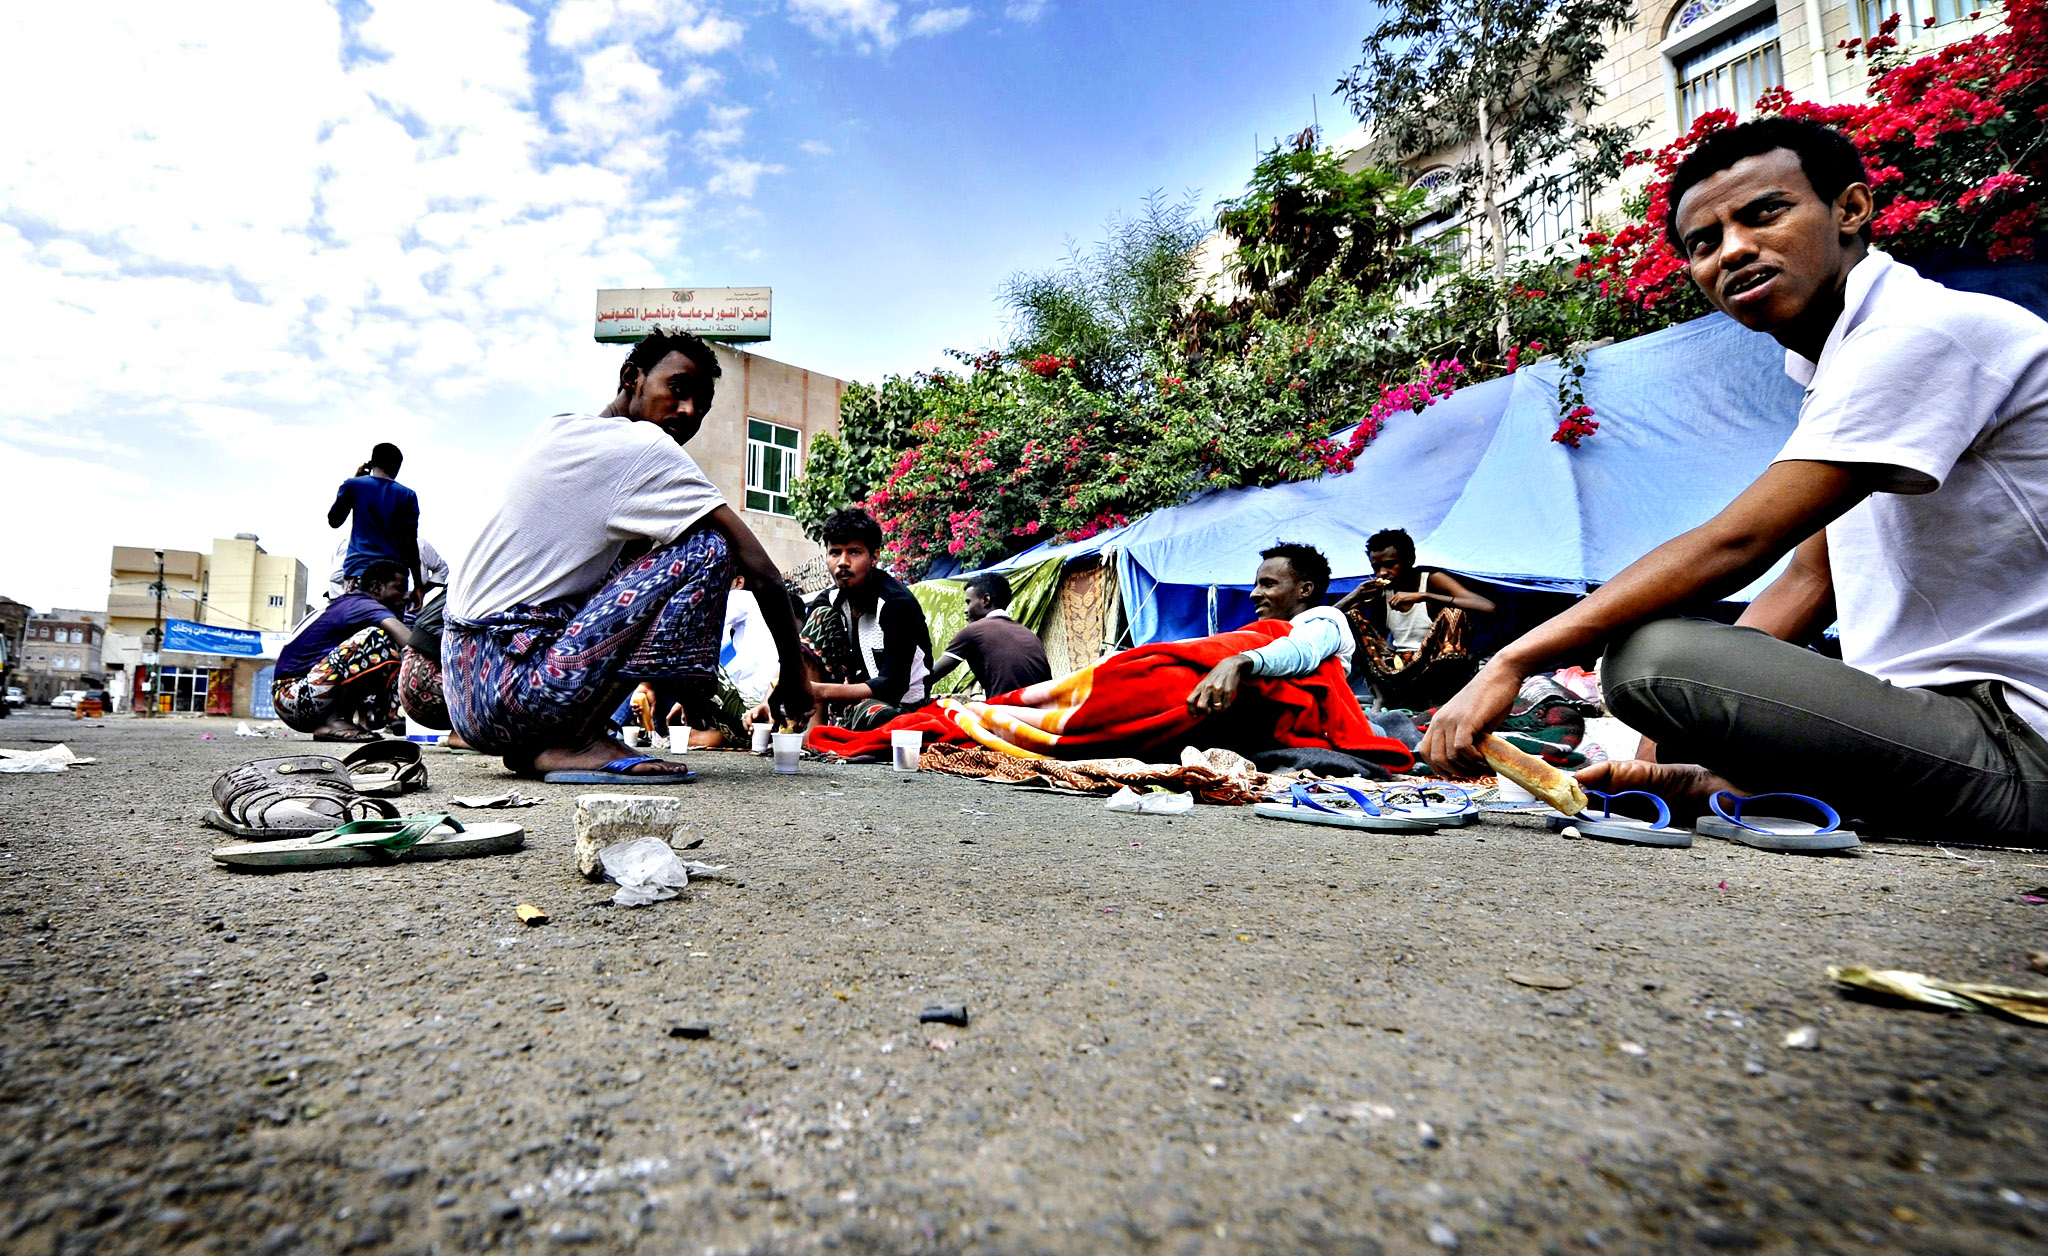 African refugees live homelessly at a temporary shelter beside a road on World Refugee Day in Sana'a, Yemen, 20 June 2014. The number of African refugees who have come to Yemen during the past few years has reached 750,000, most of them are Somalis. World Refugee Day is marked on 20 June each year.